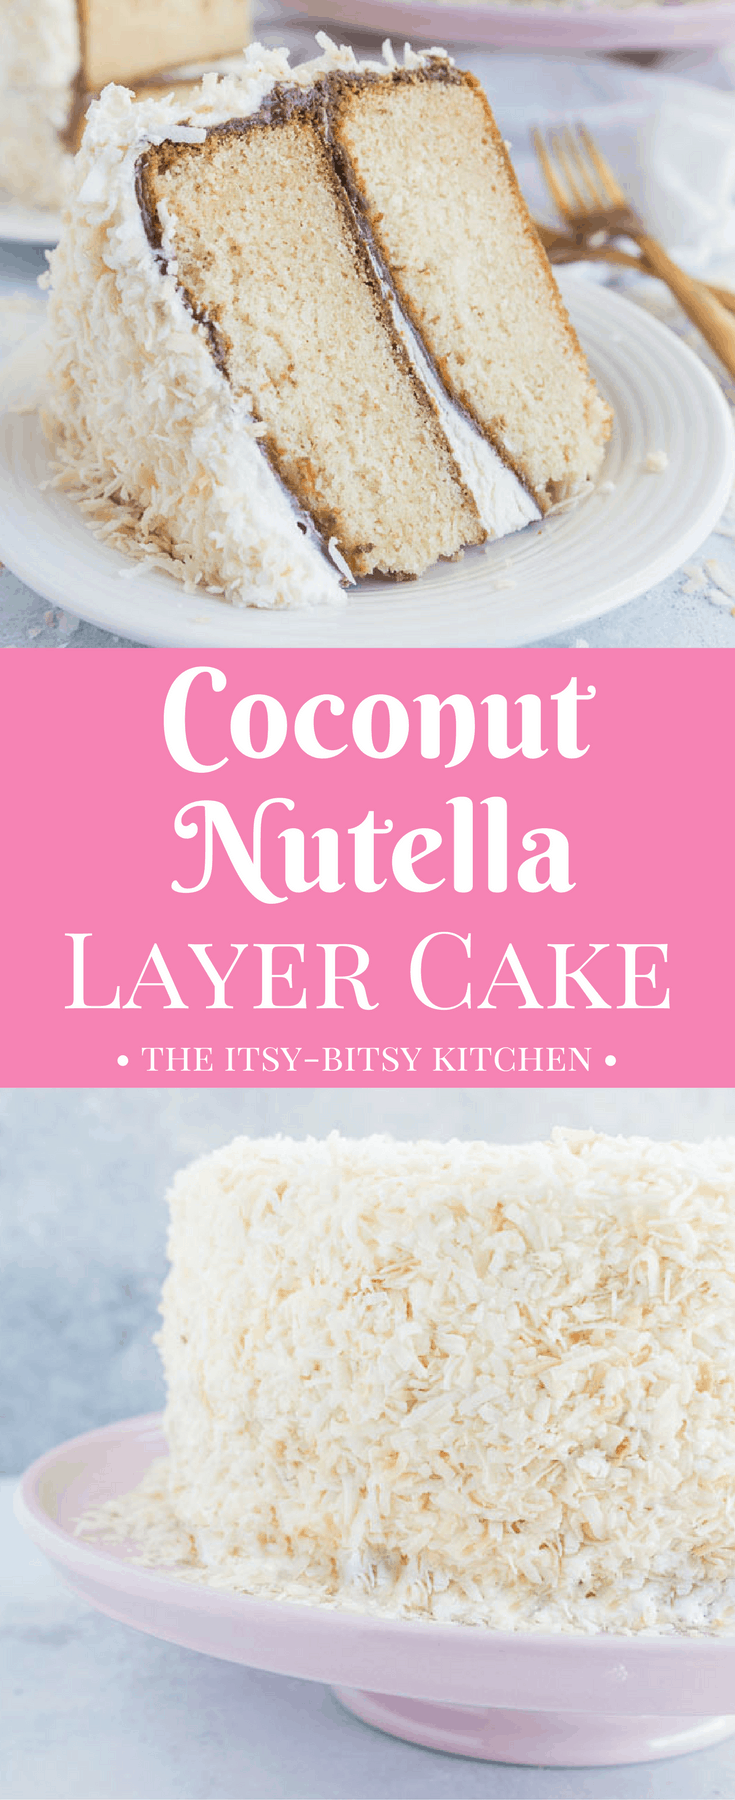 Coconut Nutella layer cake features two layers of moist coconut cake topped with Nutella, coconut buttercream, and toasted coconut. If you love chocolate and coconut then you'll adore this cake! #layercake #Nutella #coconutcake